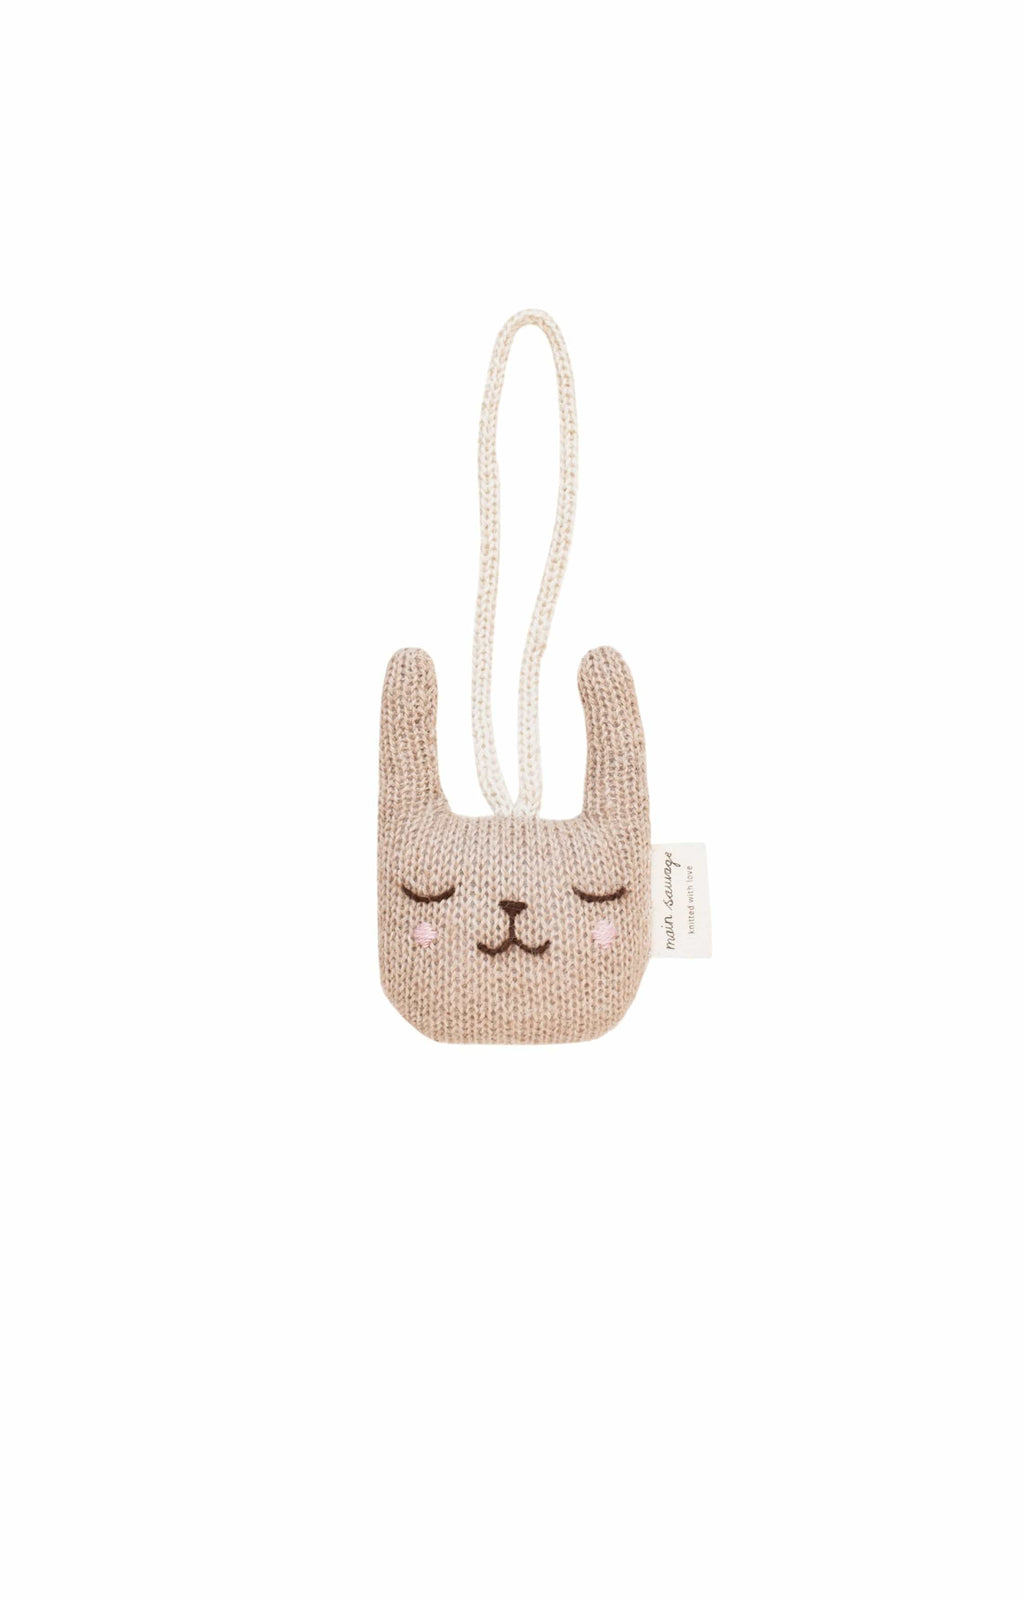 Main Sauvage rabbit hanging rattle (PRE-ORDER AUG)